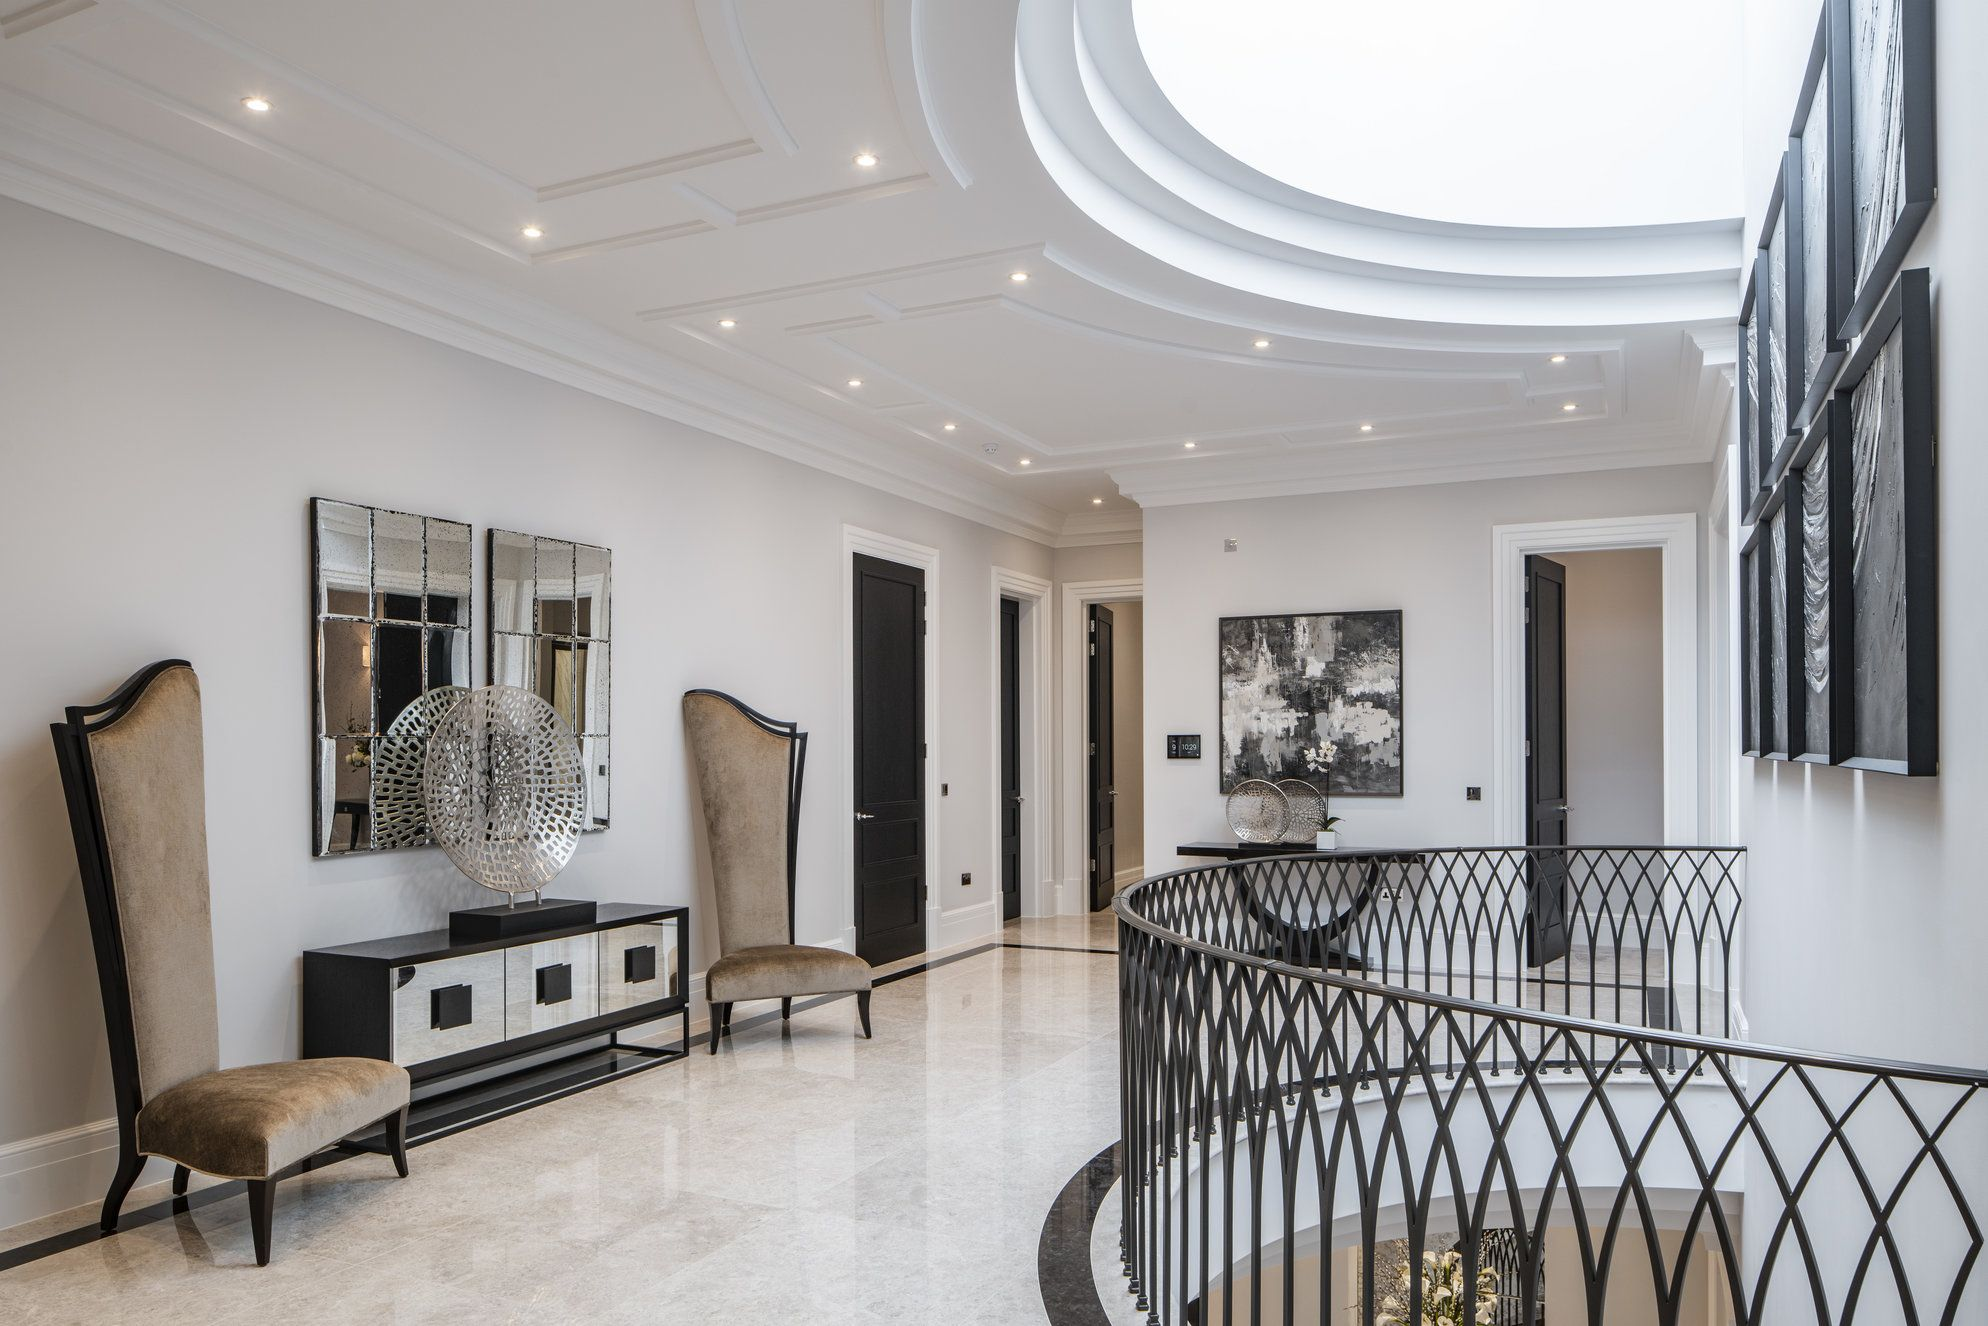 Our Architectural Design On The First Floor Of This Surrey Mansion